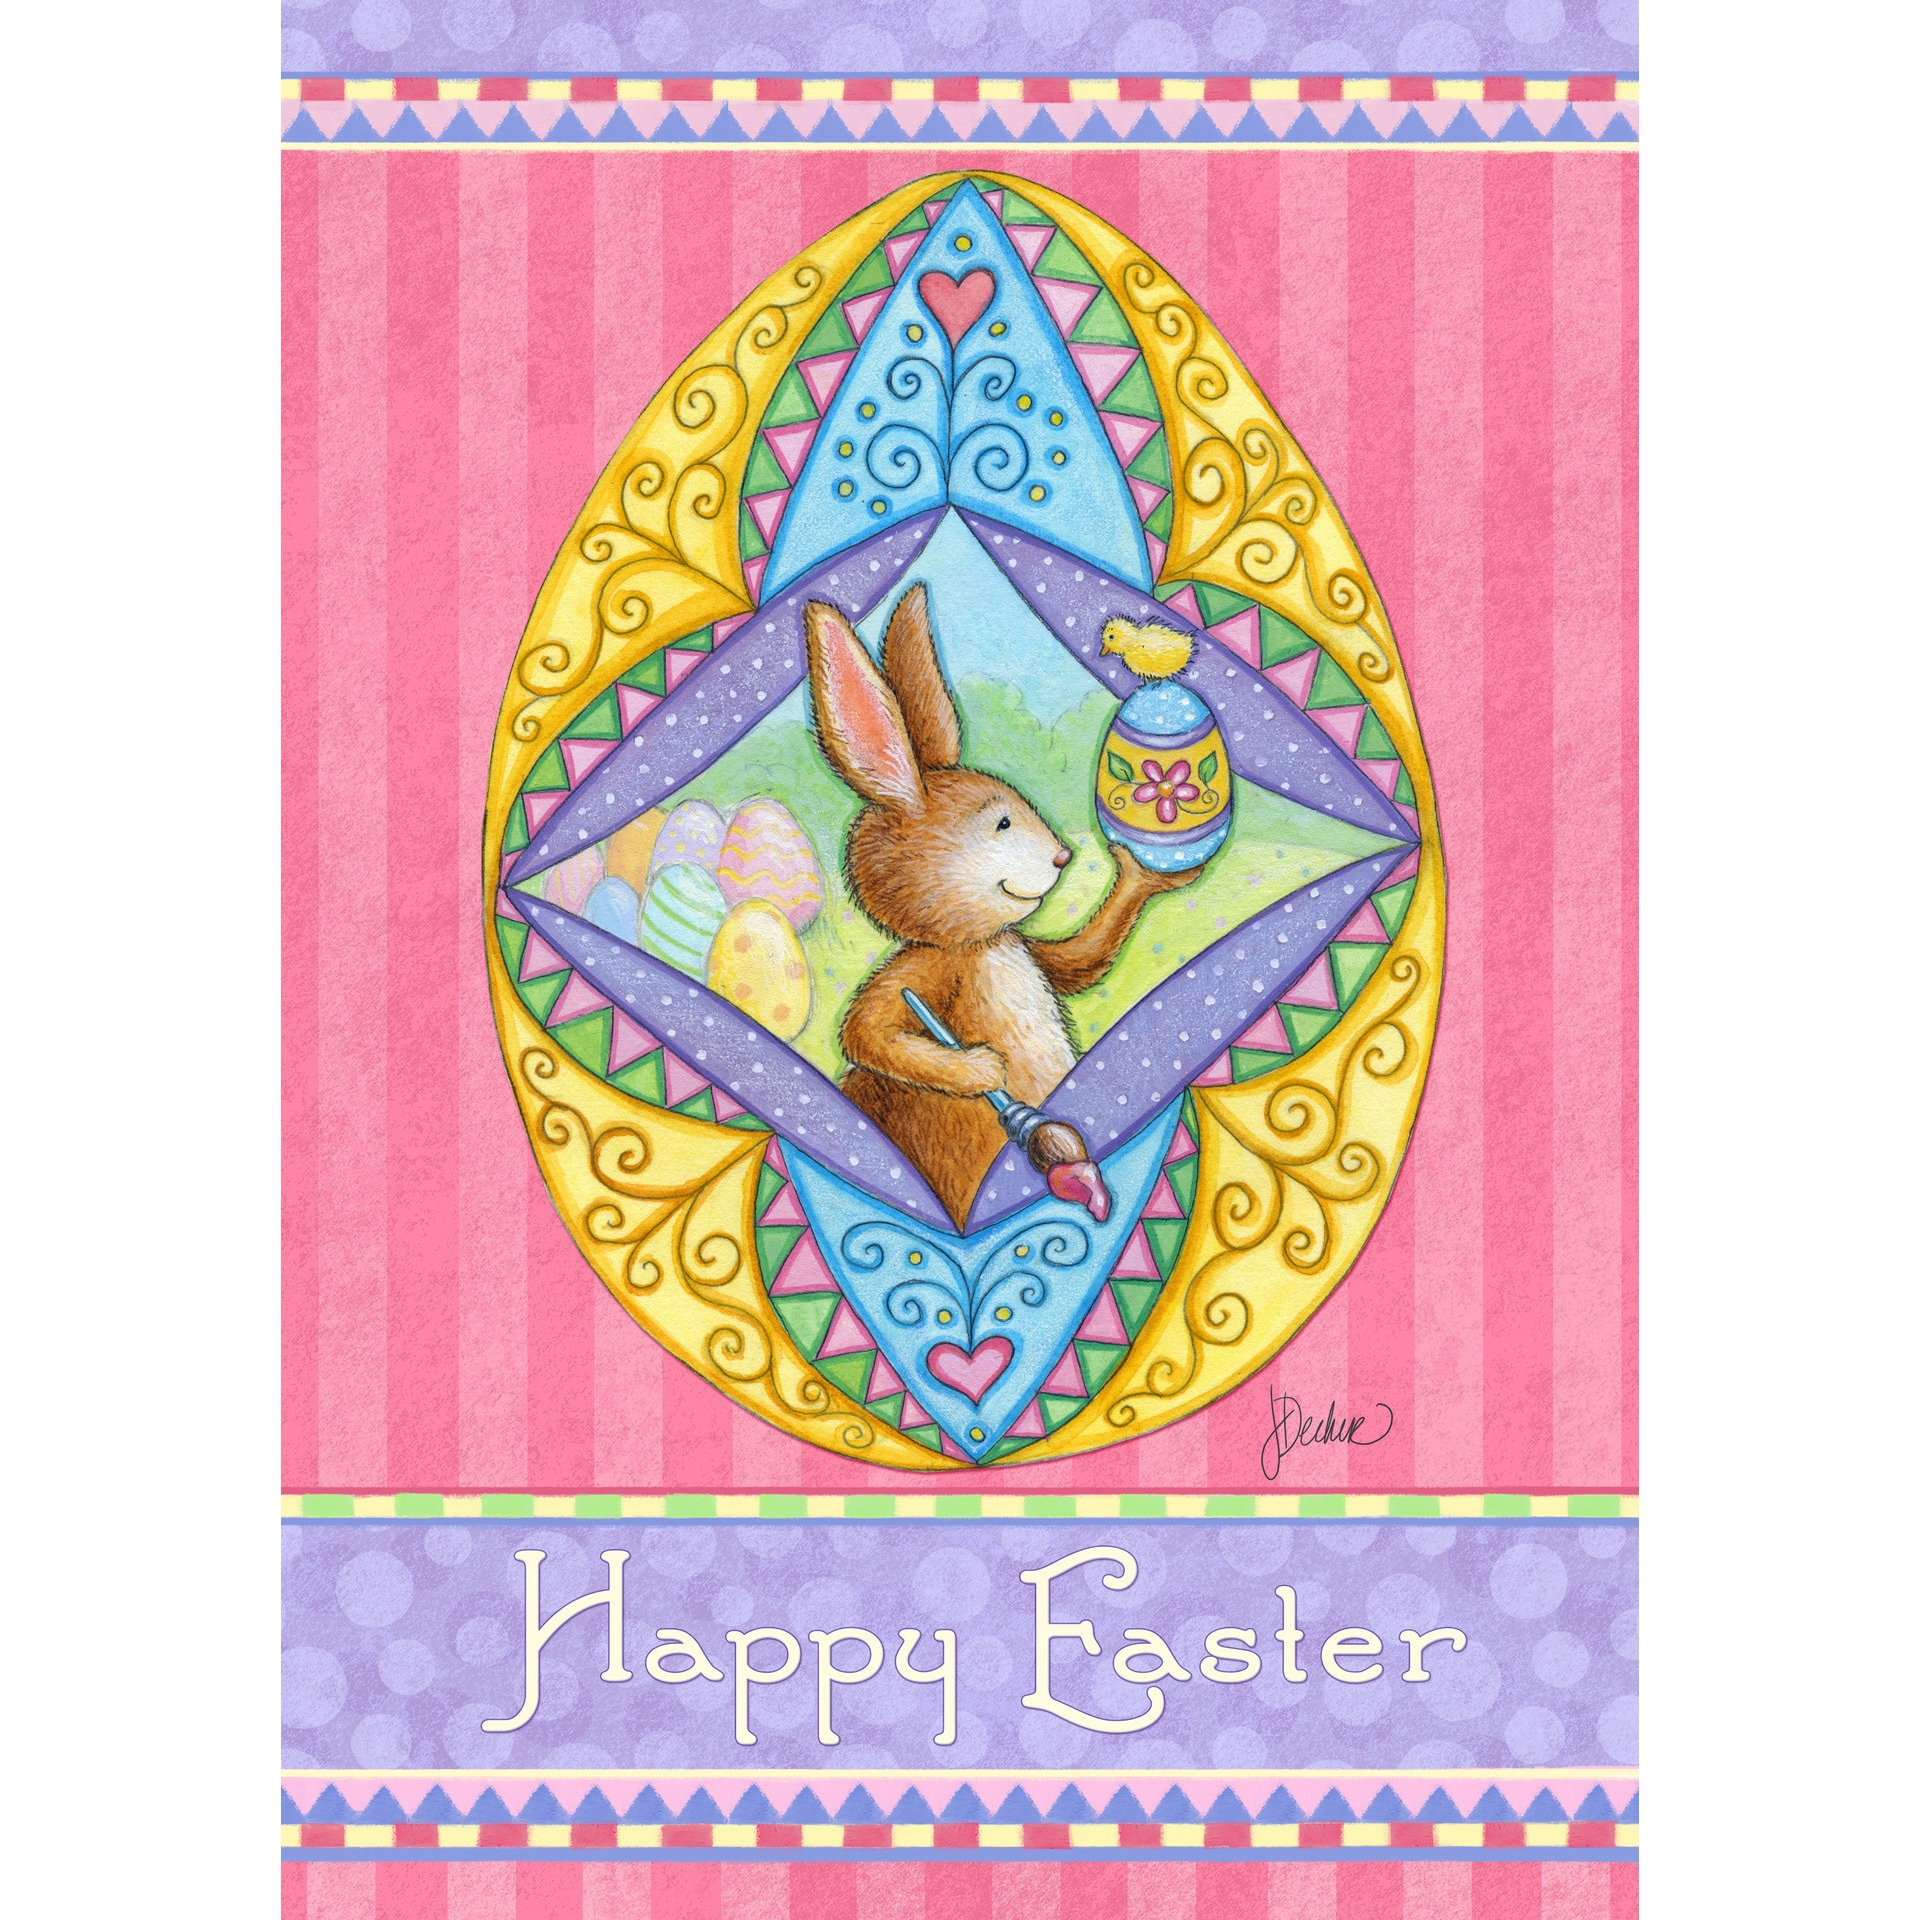 'Happy Easter' Garden Flag (12 x 18), Multi (Synthetic Fi...